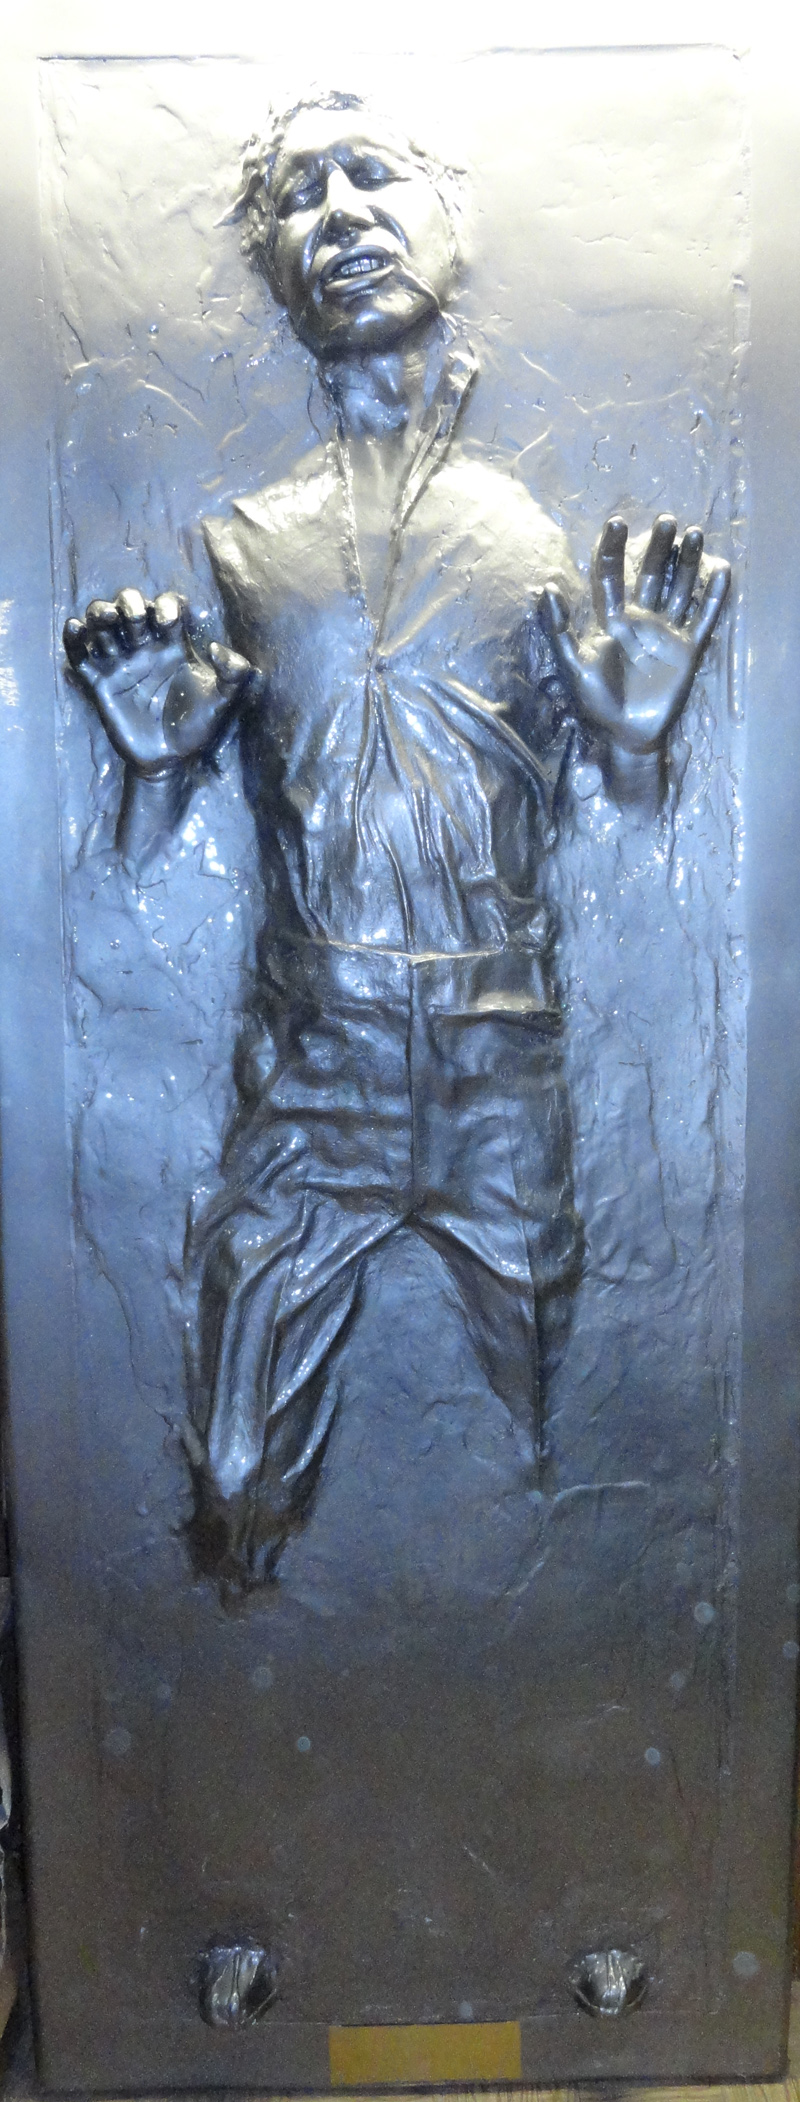 Han Solo Frozen in Carbonite Illusive Concepts Life Sized